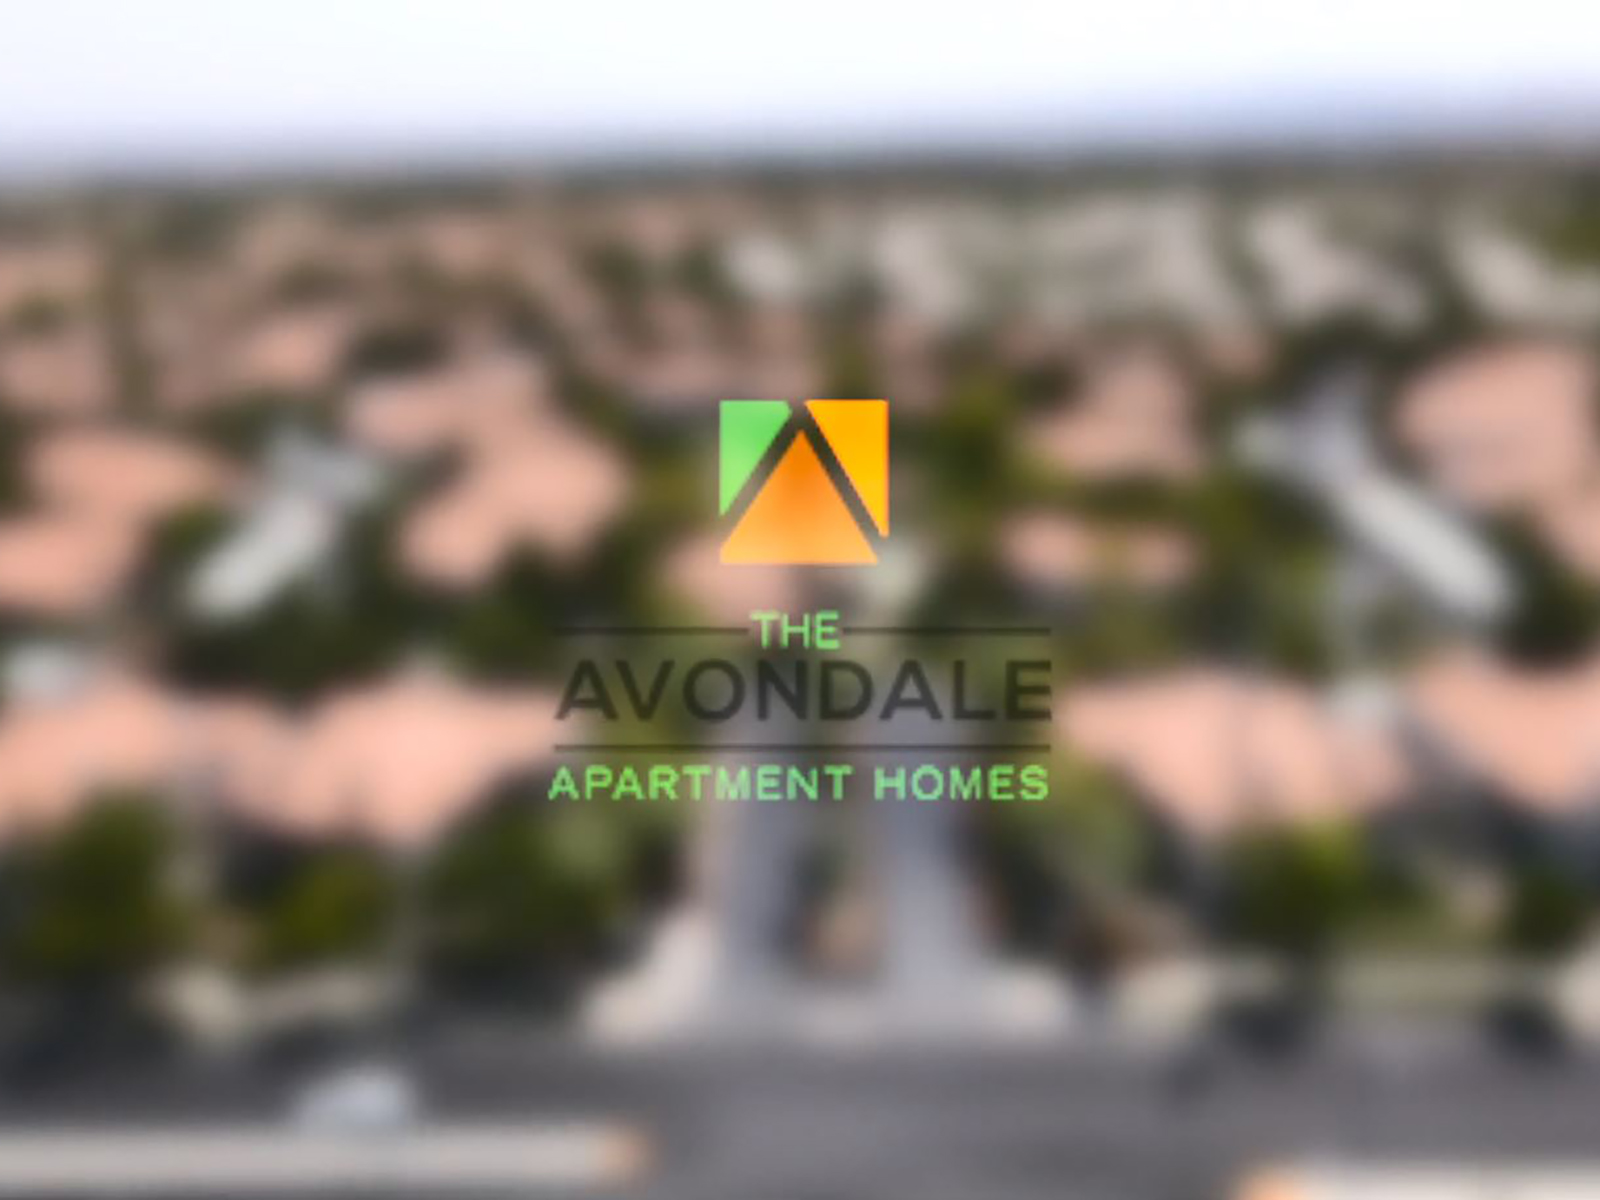 Take a tour of The Avondalefrom the comfort of your very own home. Here, you can create the lifestyle that you have been waiting for. Join us today!